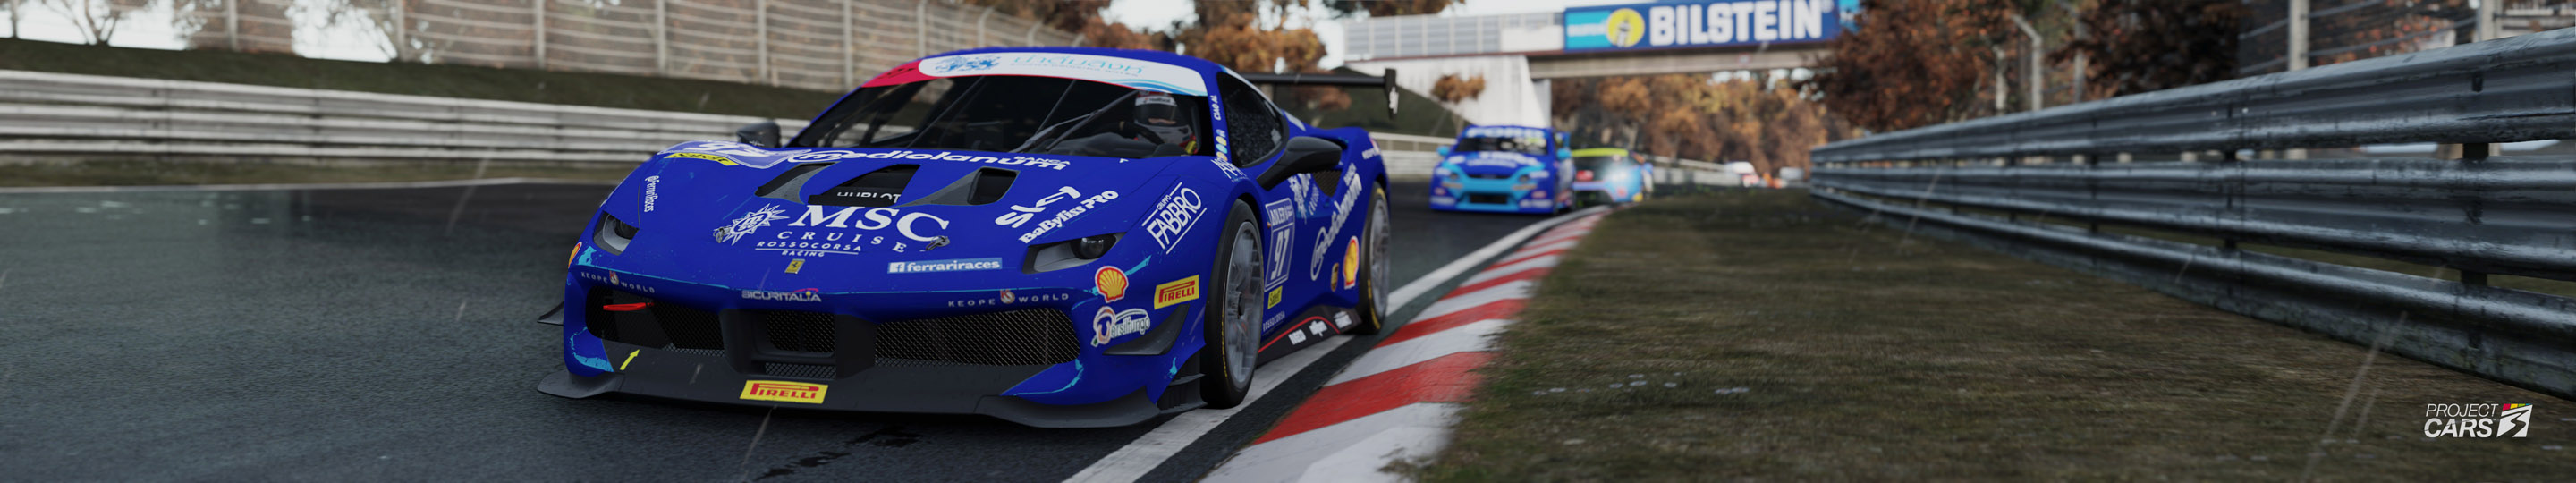 8 PROJECT CARS 3 GT3 at NORDSCHLEIFE copy.jpg